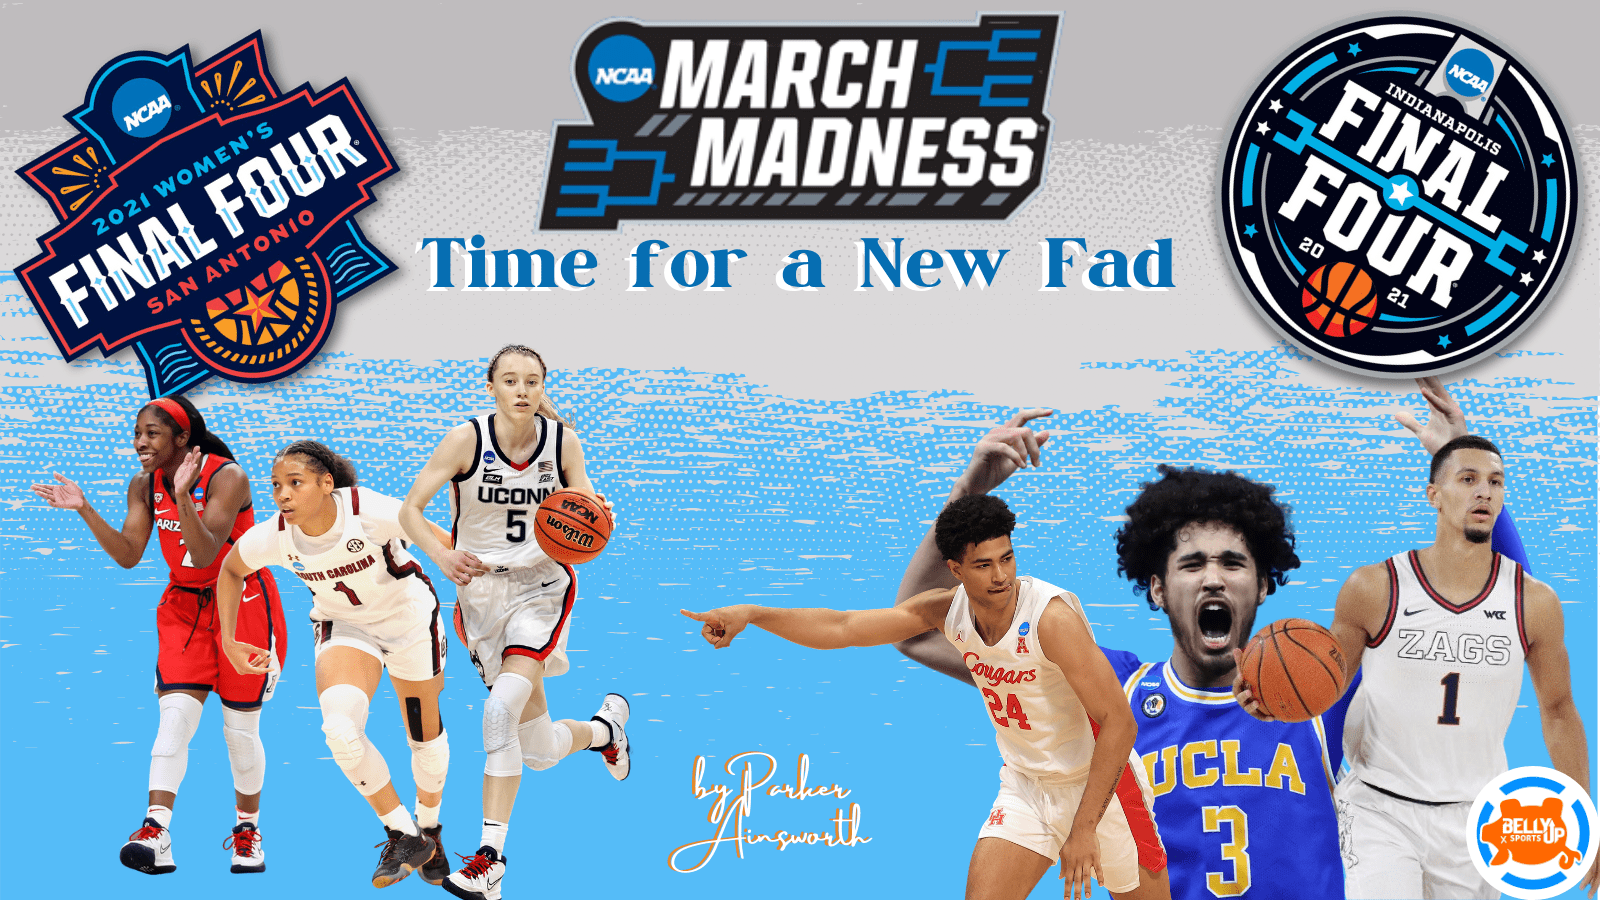 March Madness: Time for a New Fad